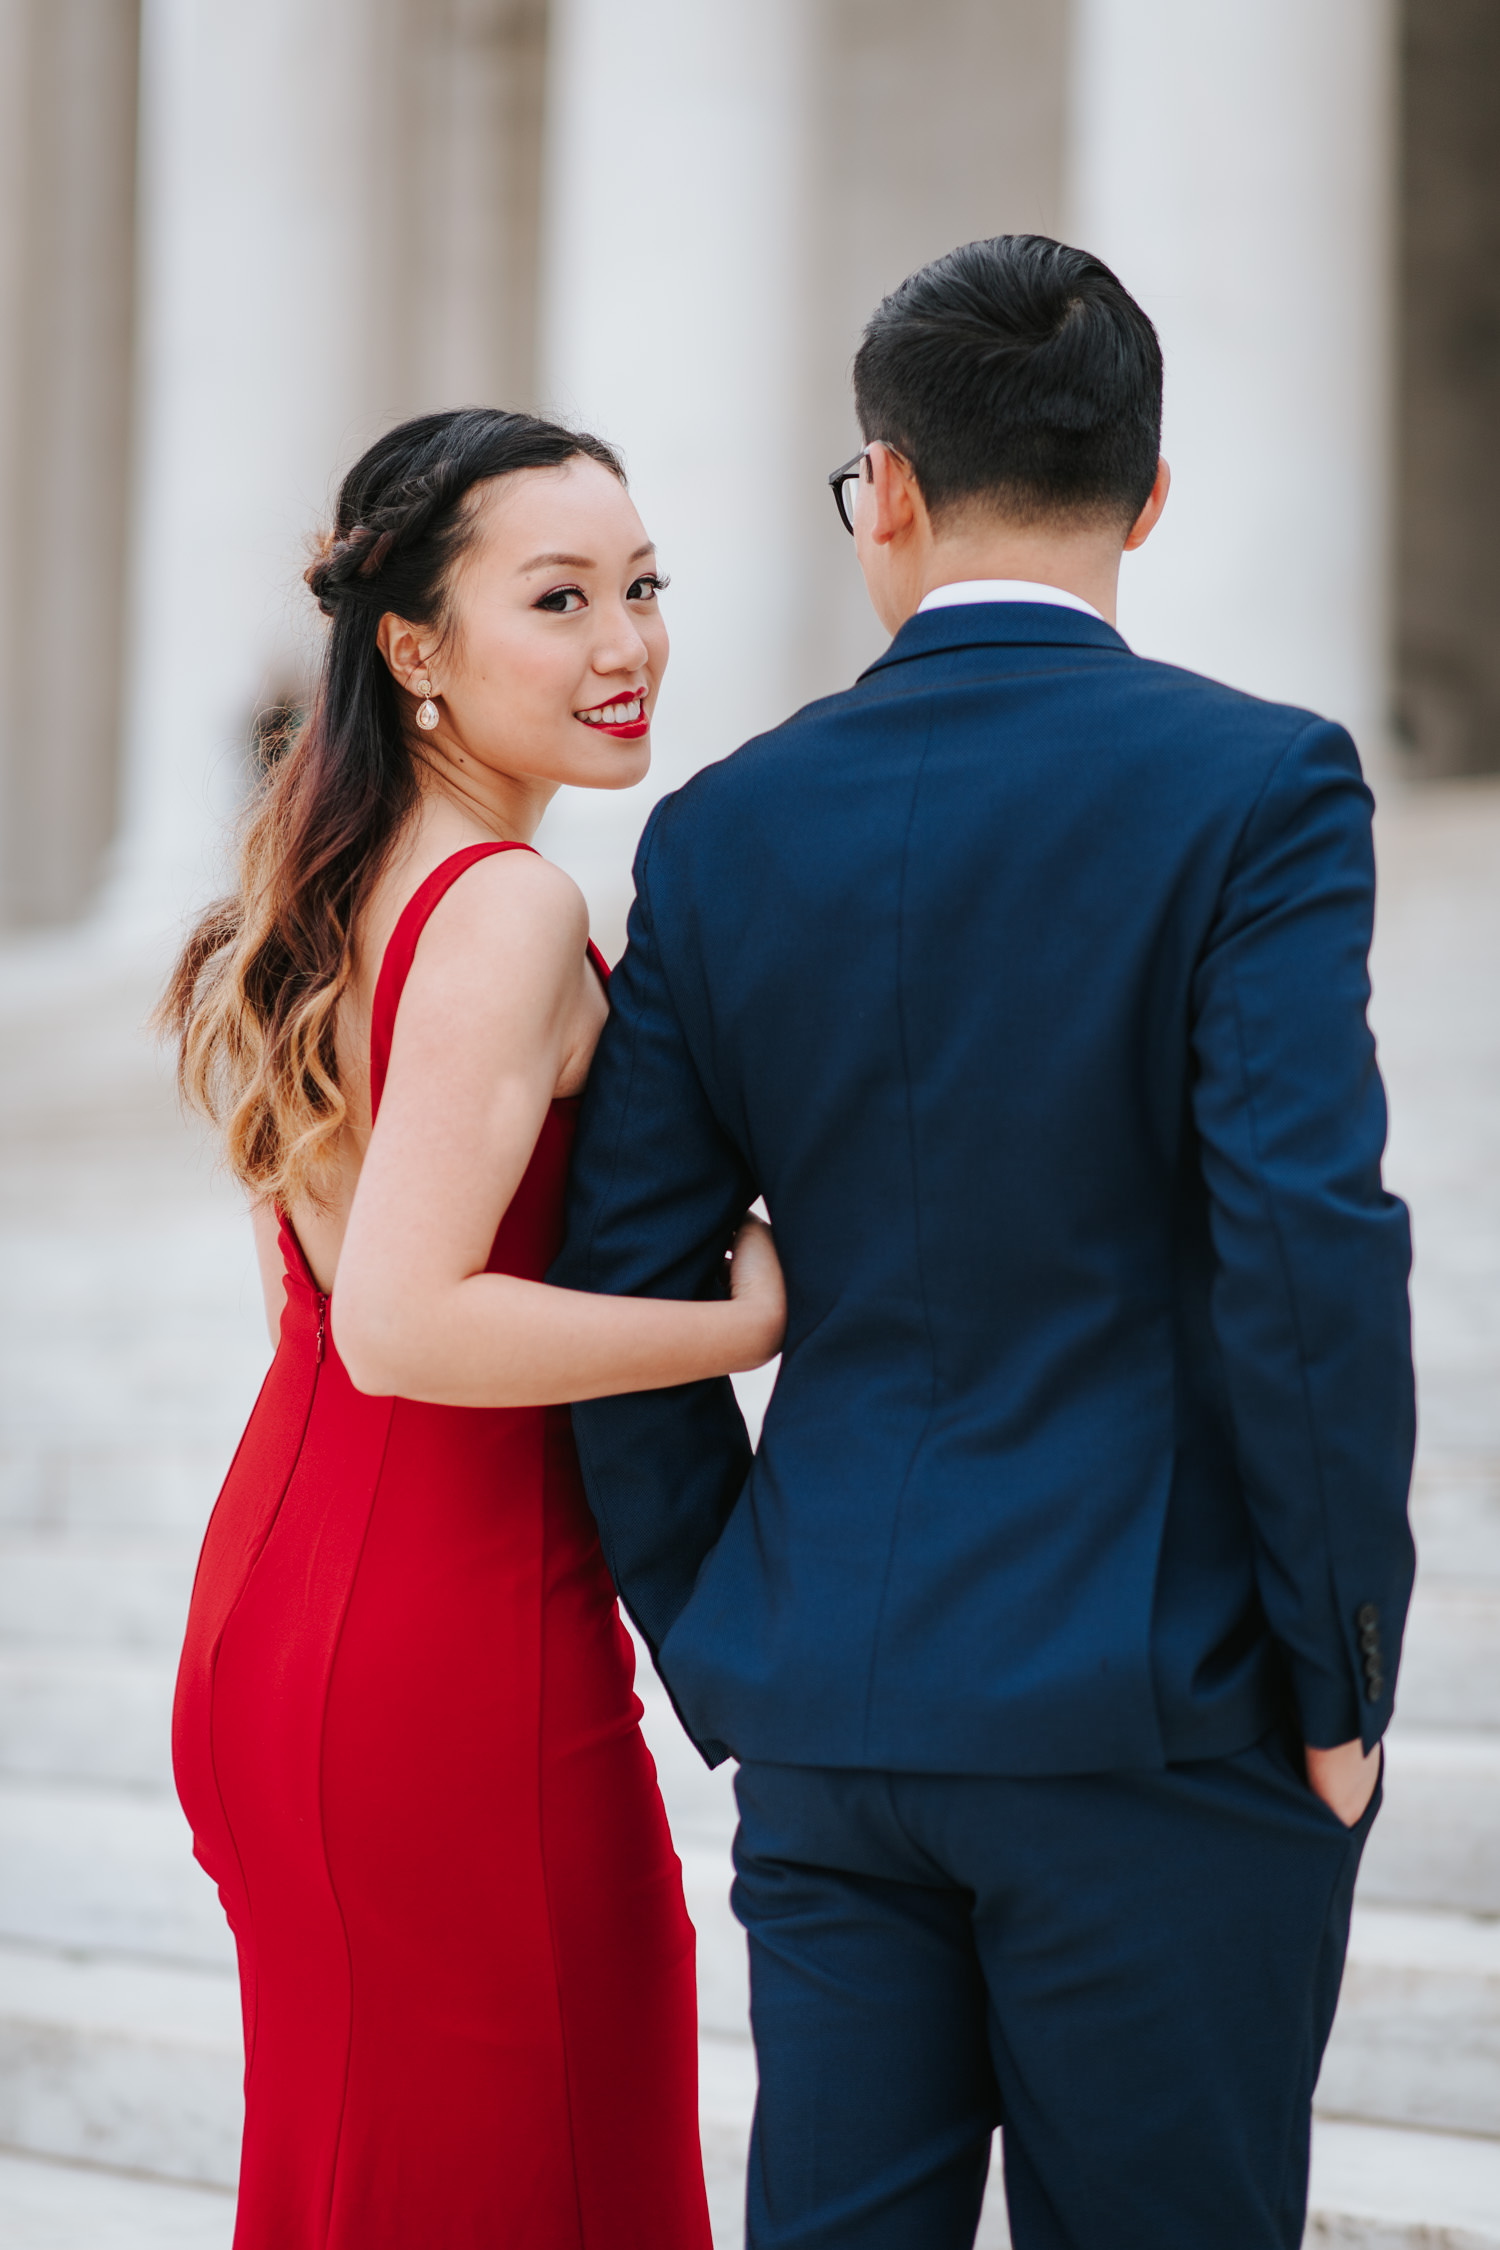 Washington DC Engagement Session at the steps of Jefferson Memorial